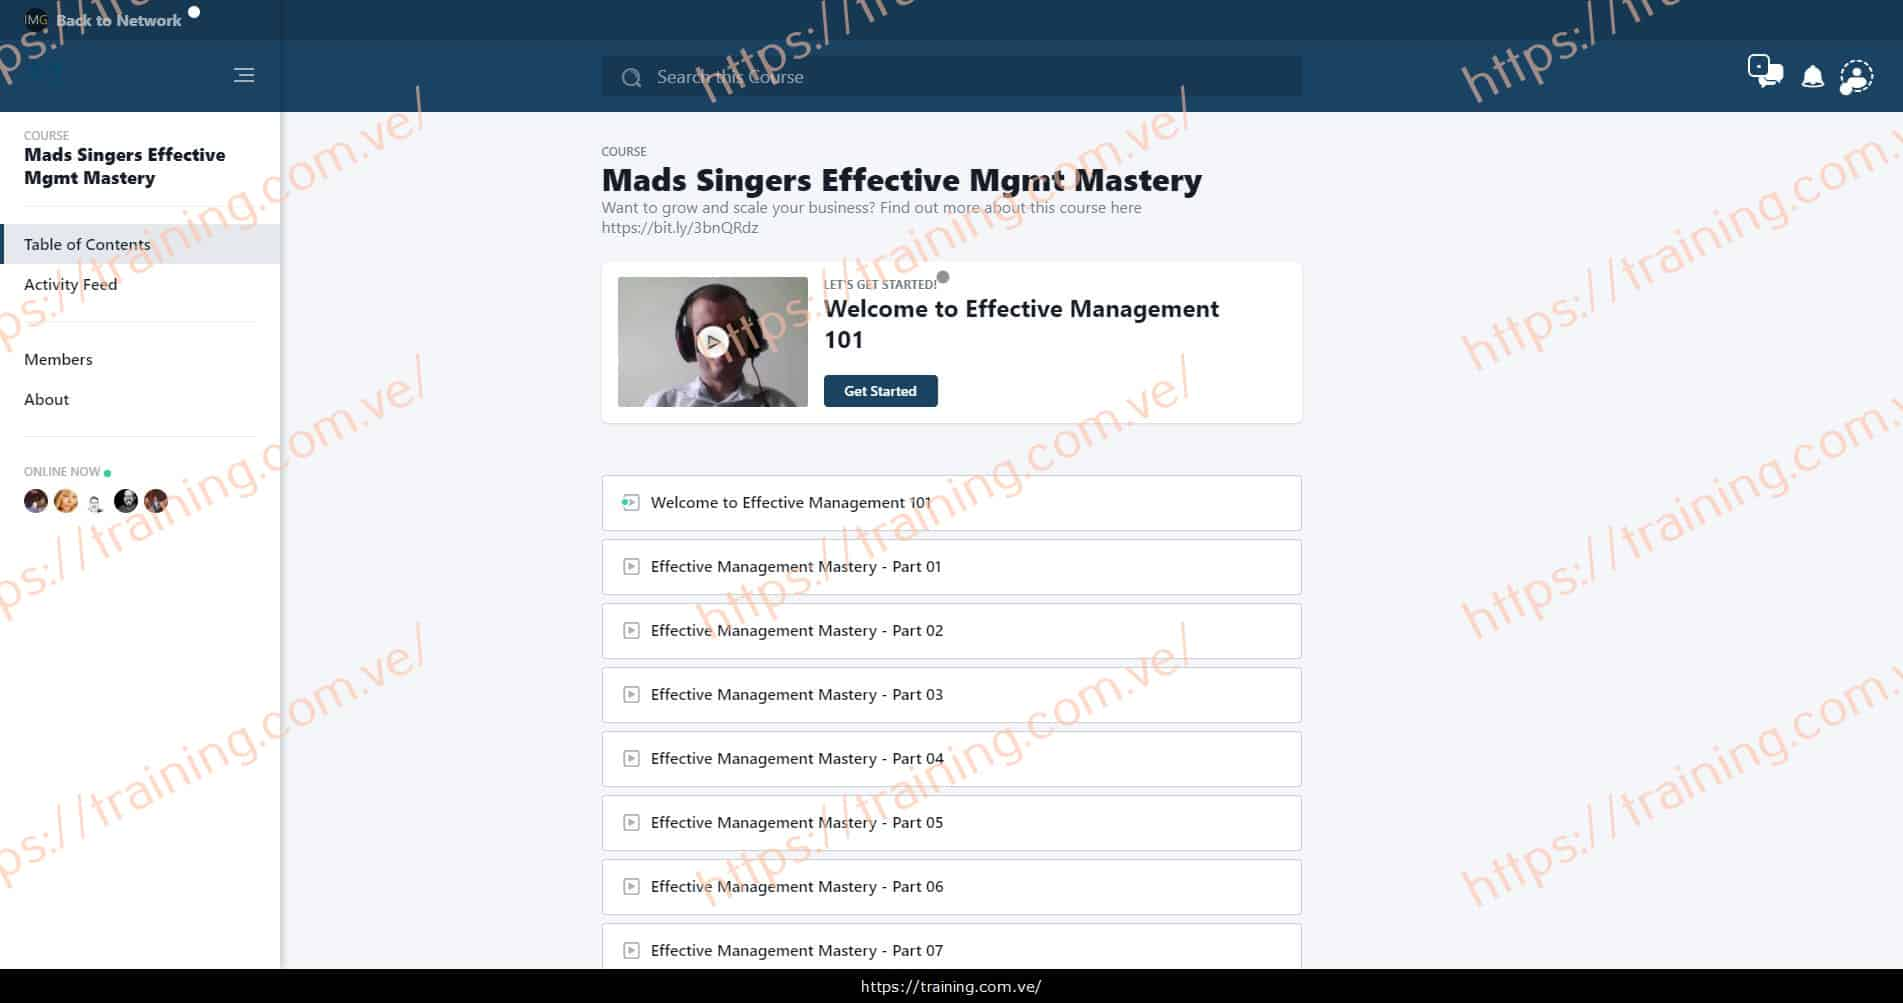 Effective Management Mastery by Mads Singers Download